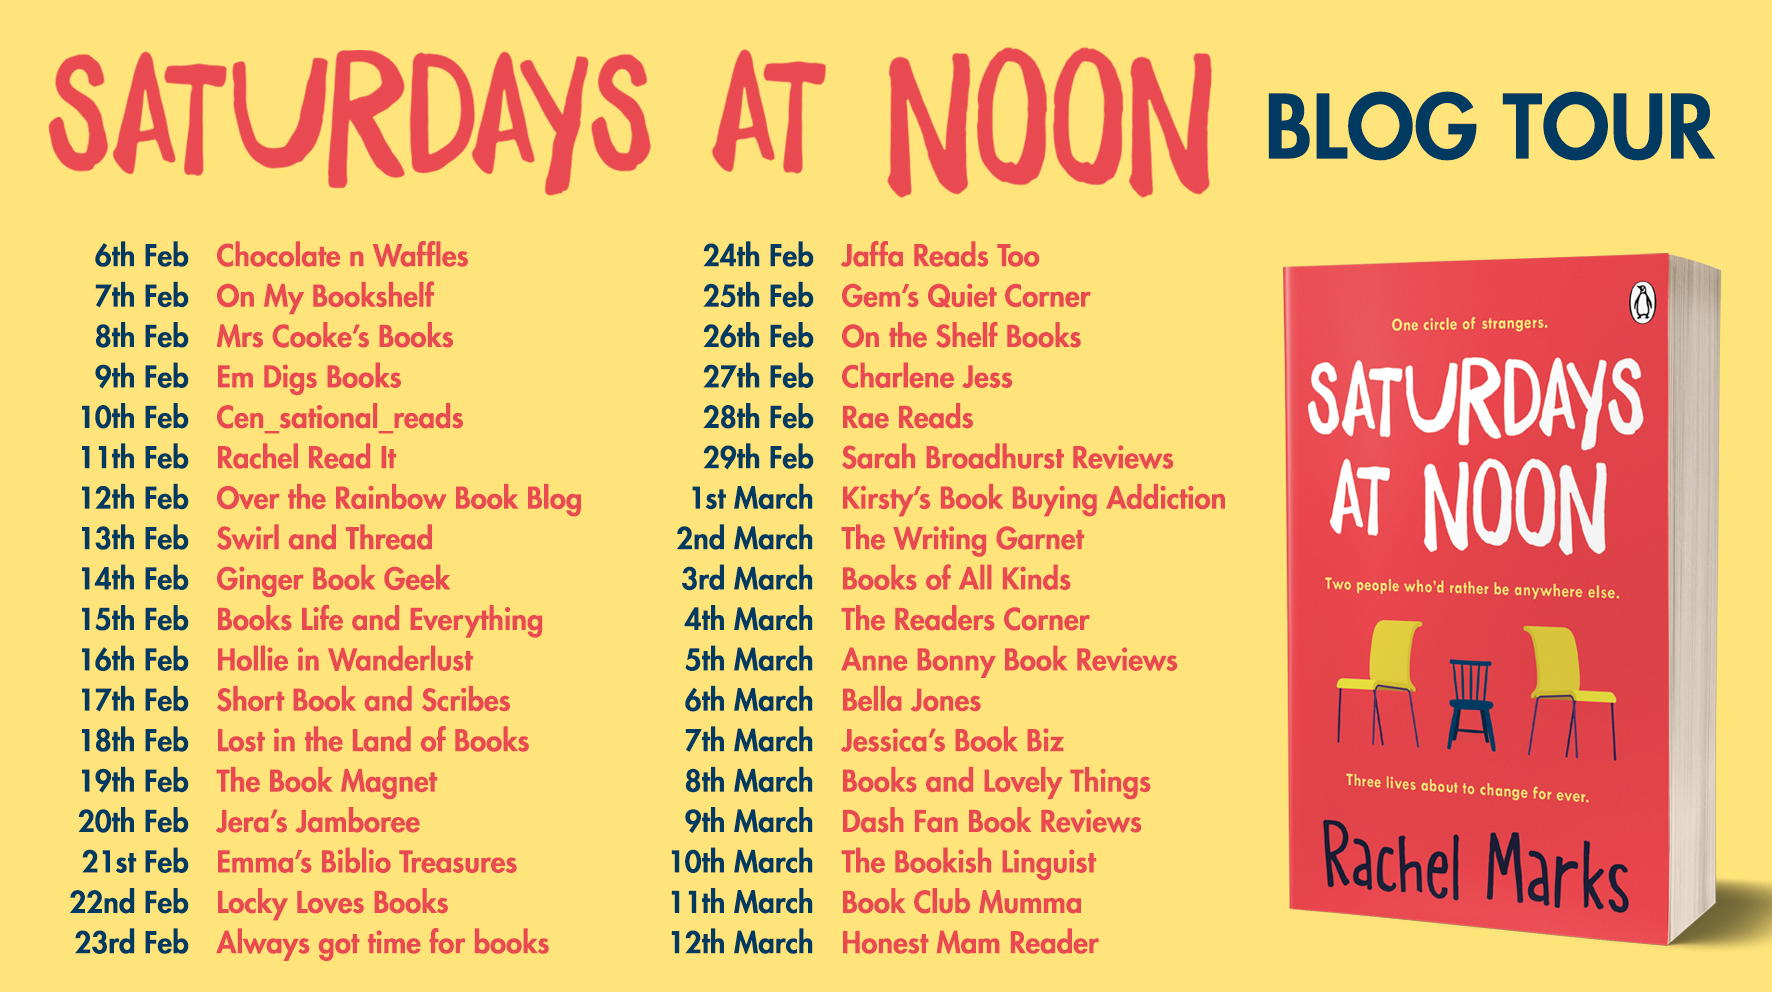 Saturdays at Noon Blog Tour (1)